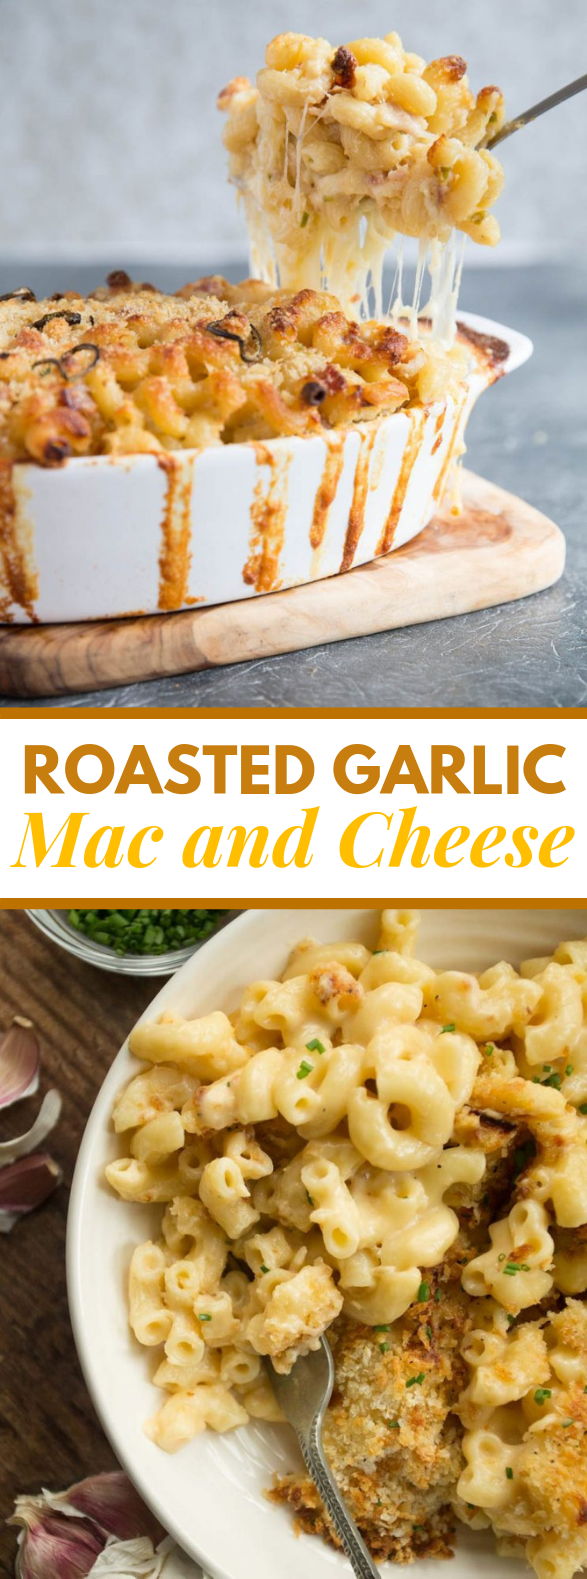 Roasted Garlic Mac and Cheese #dinner #hearty